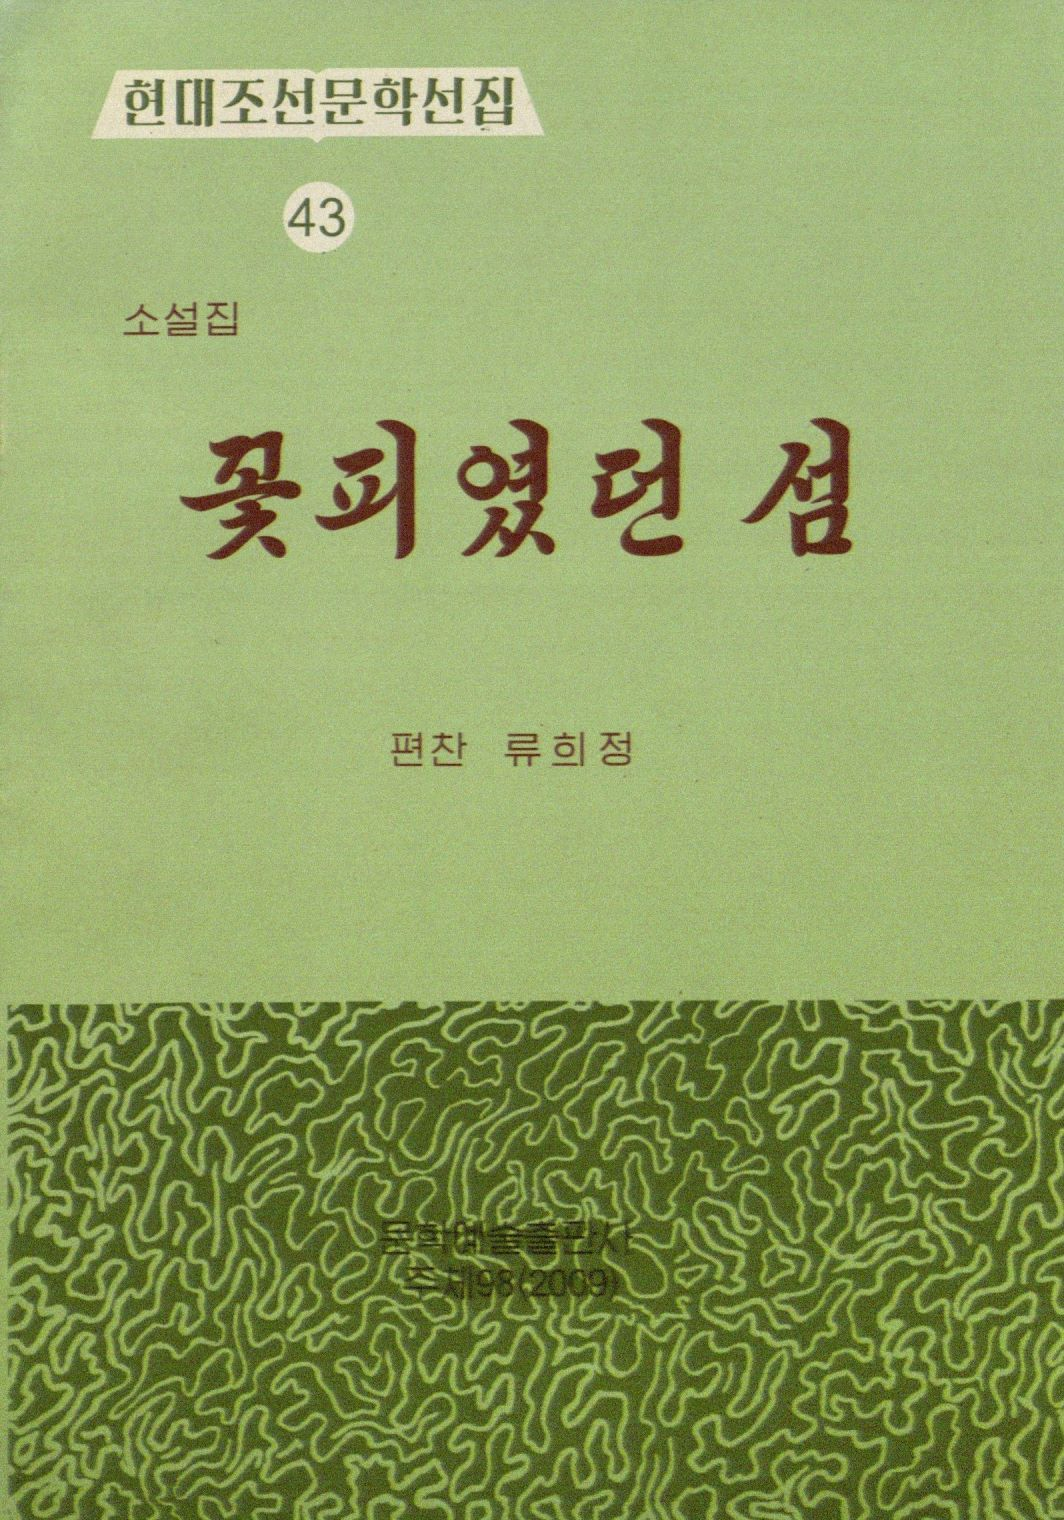 title page of 꽃 피였던 섬